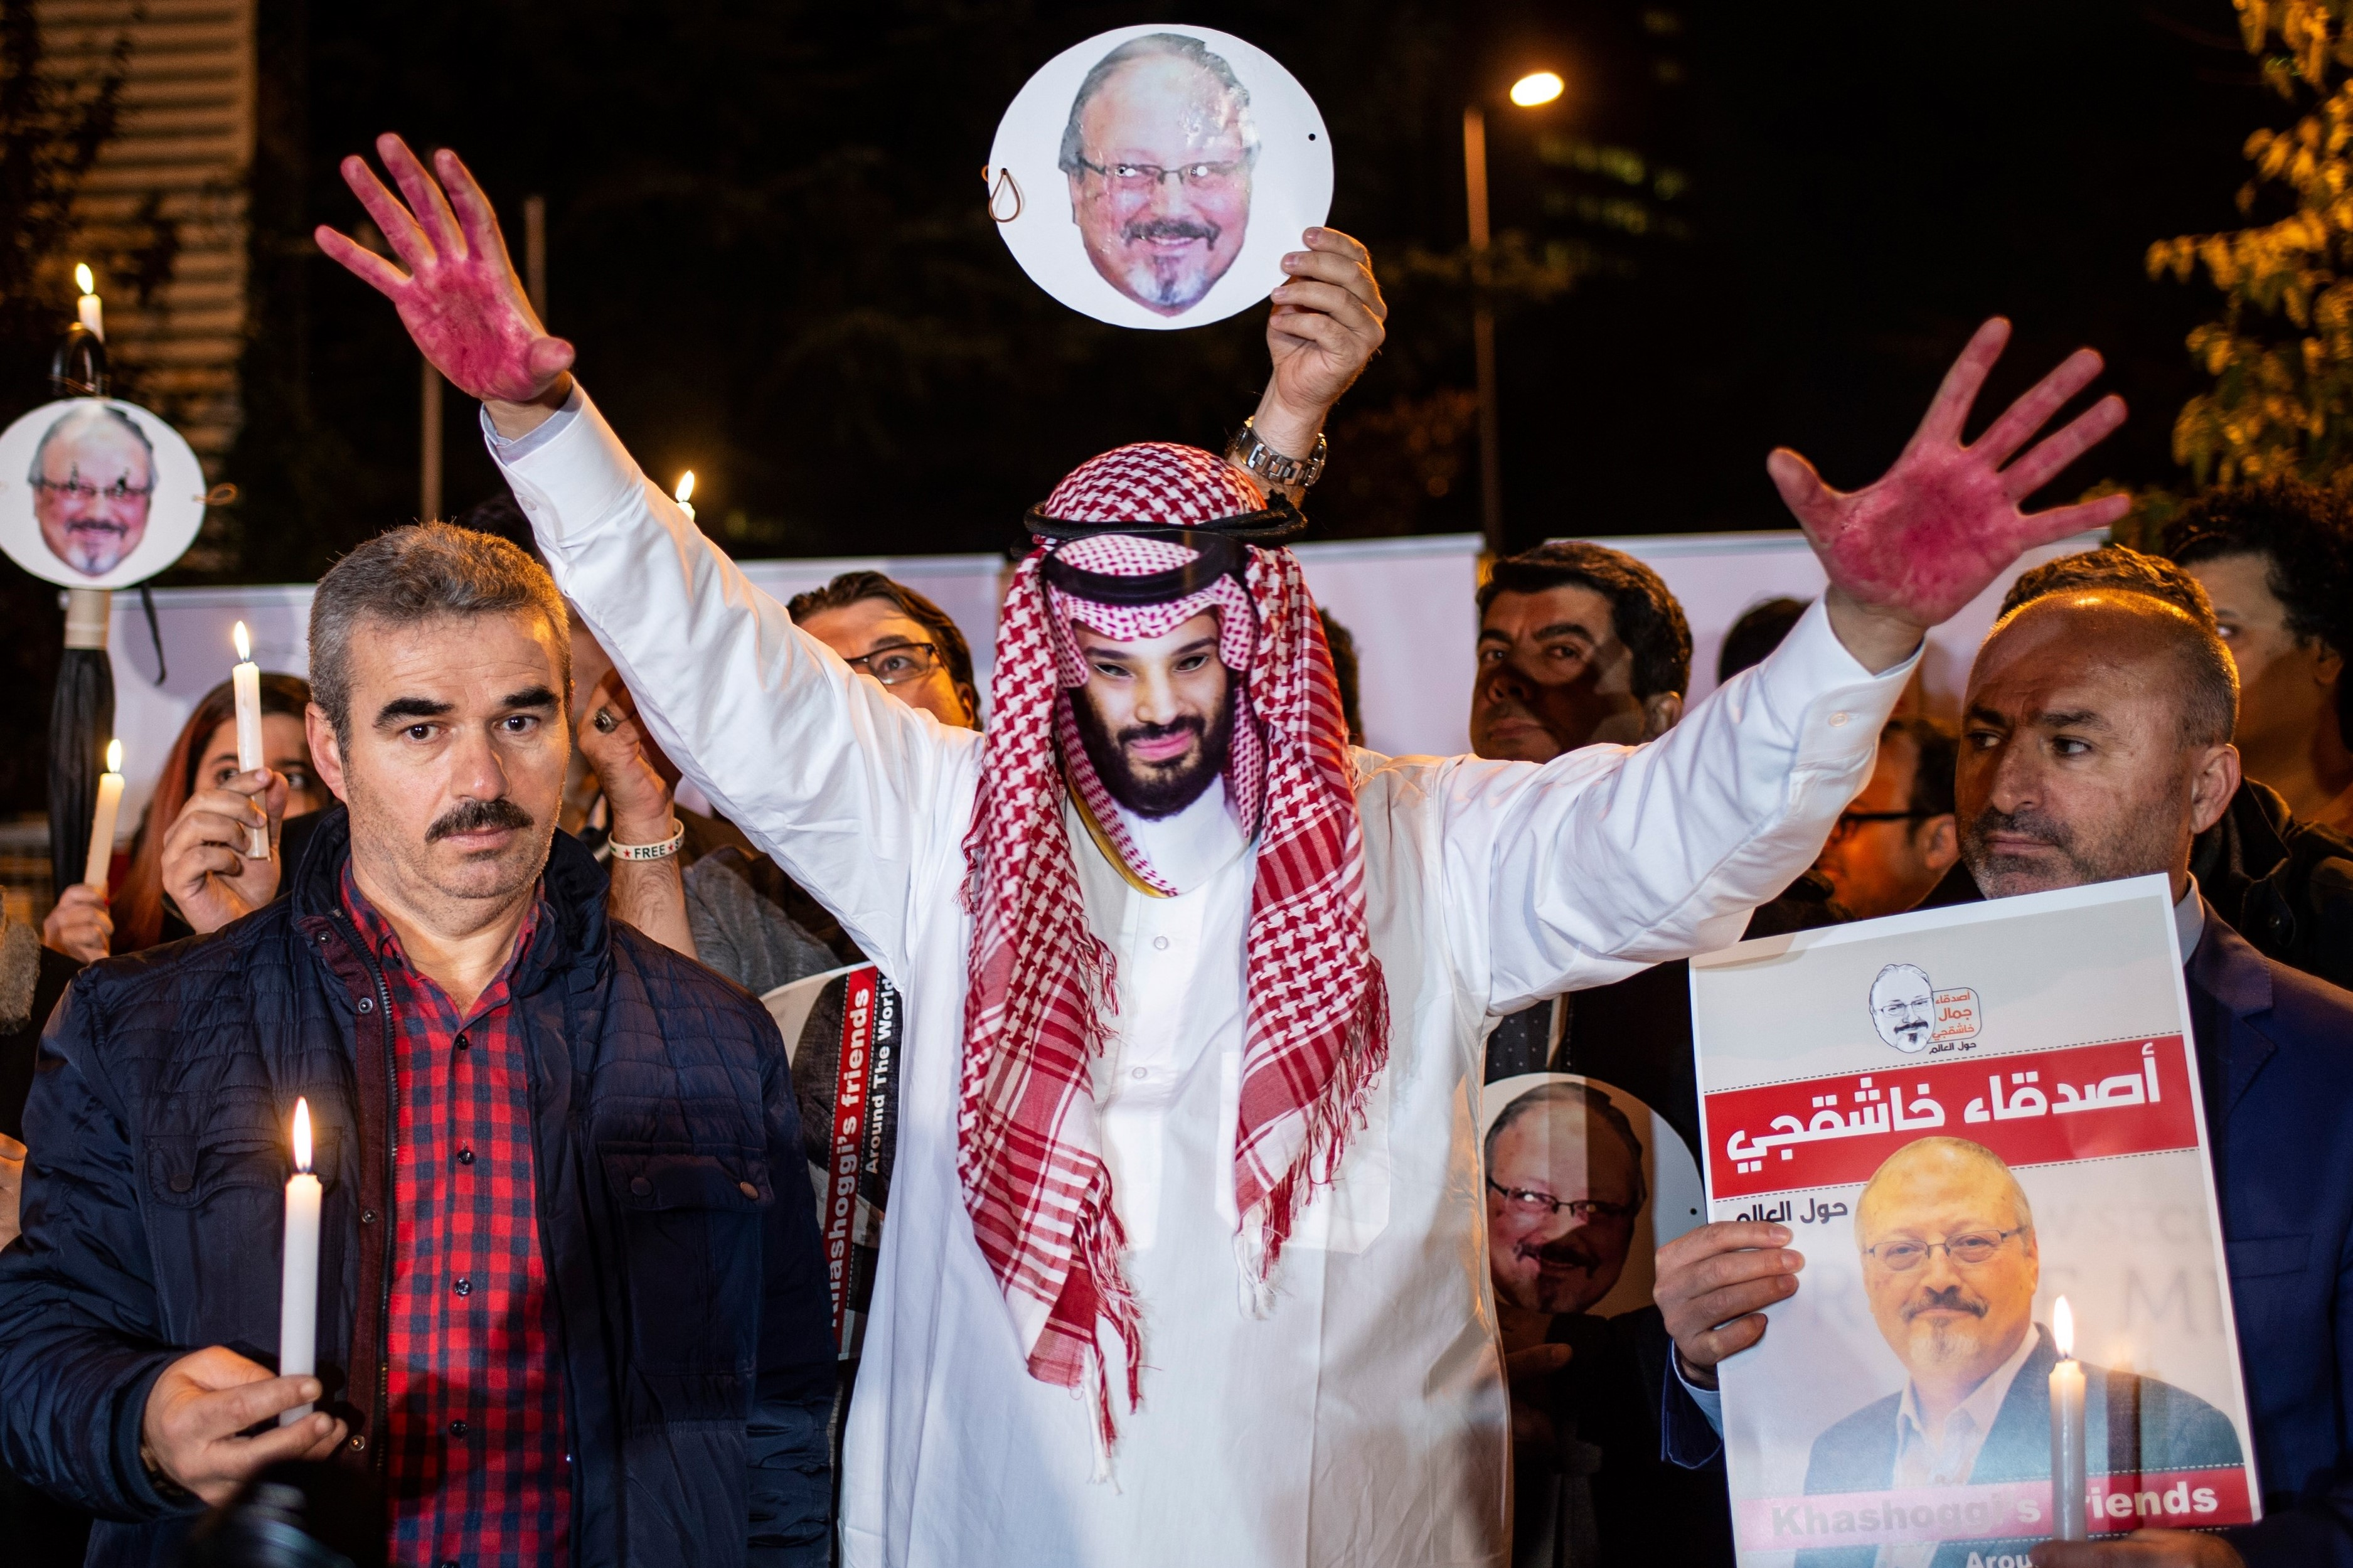 A protestor wears a mask of depicting Saudi Crown Prince Mohammad Bin Salman with red painted hands next to people holding posters of Saudi journalist Jamal Khashoggi during the demonstration outside the Saudi Arabia consulate in Istanbul, on 25 October, 2018 (AFP)